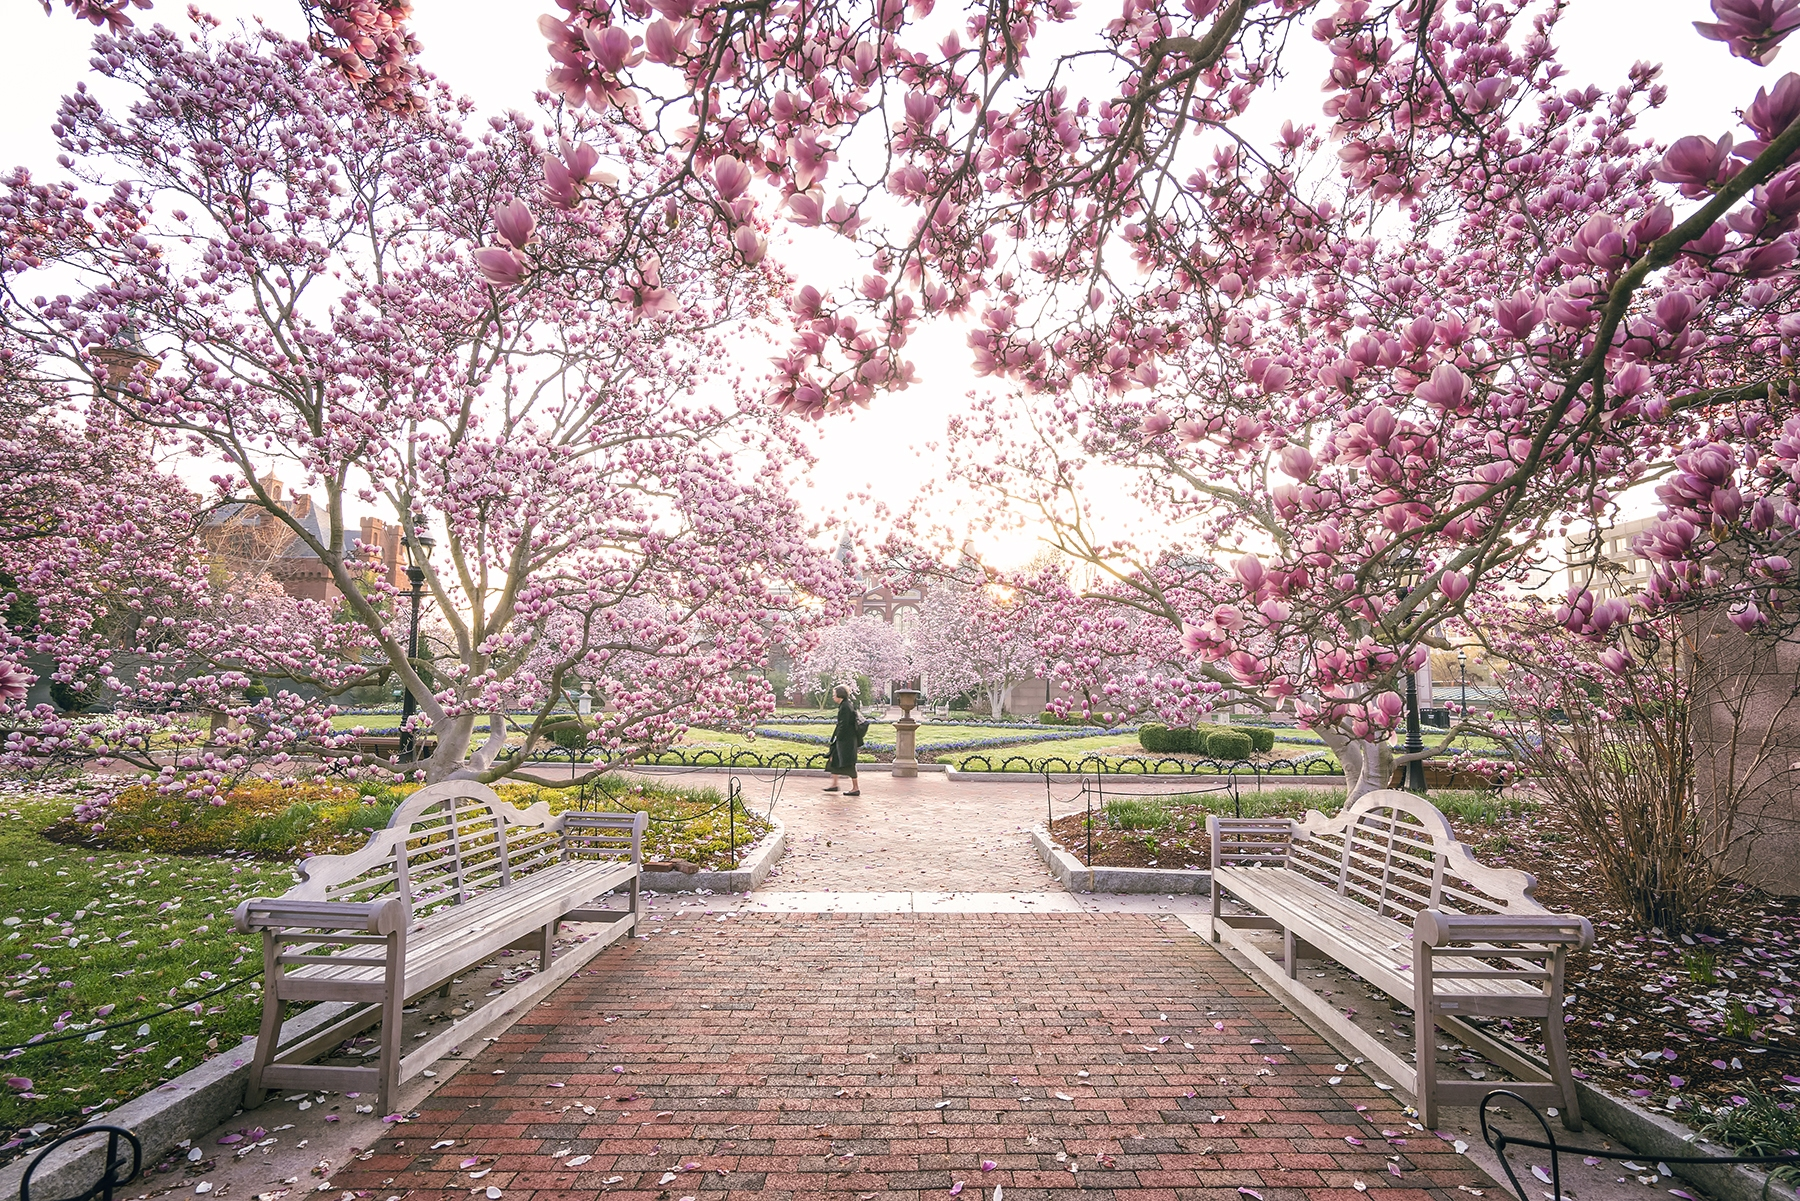 smithsonian gardens, smithsonian institution, washington dc, landscapes, interior scapes, horticulture, collections and exhibits, national mall, constitution ave, outdoor gardens, magnolias, pink, trees,